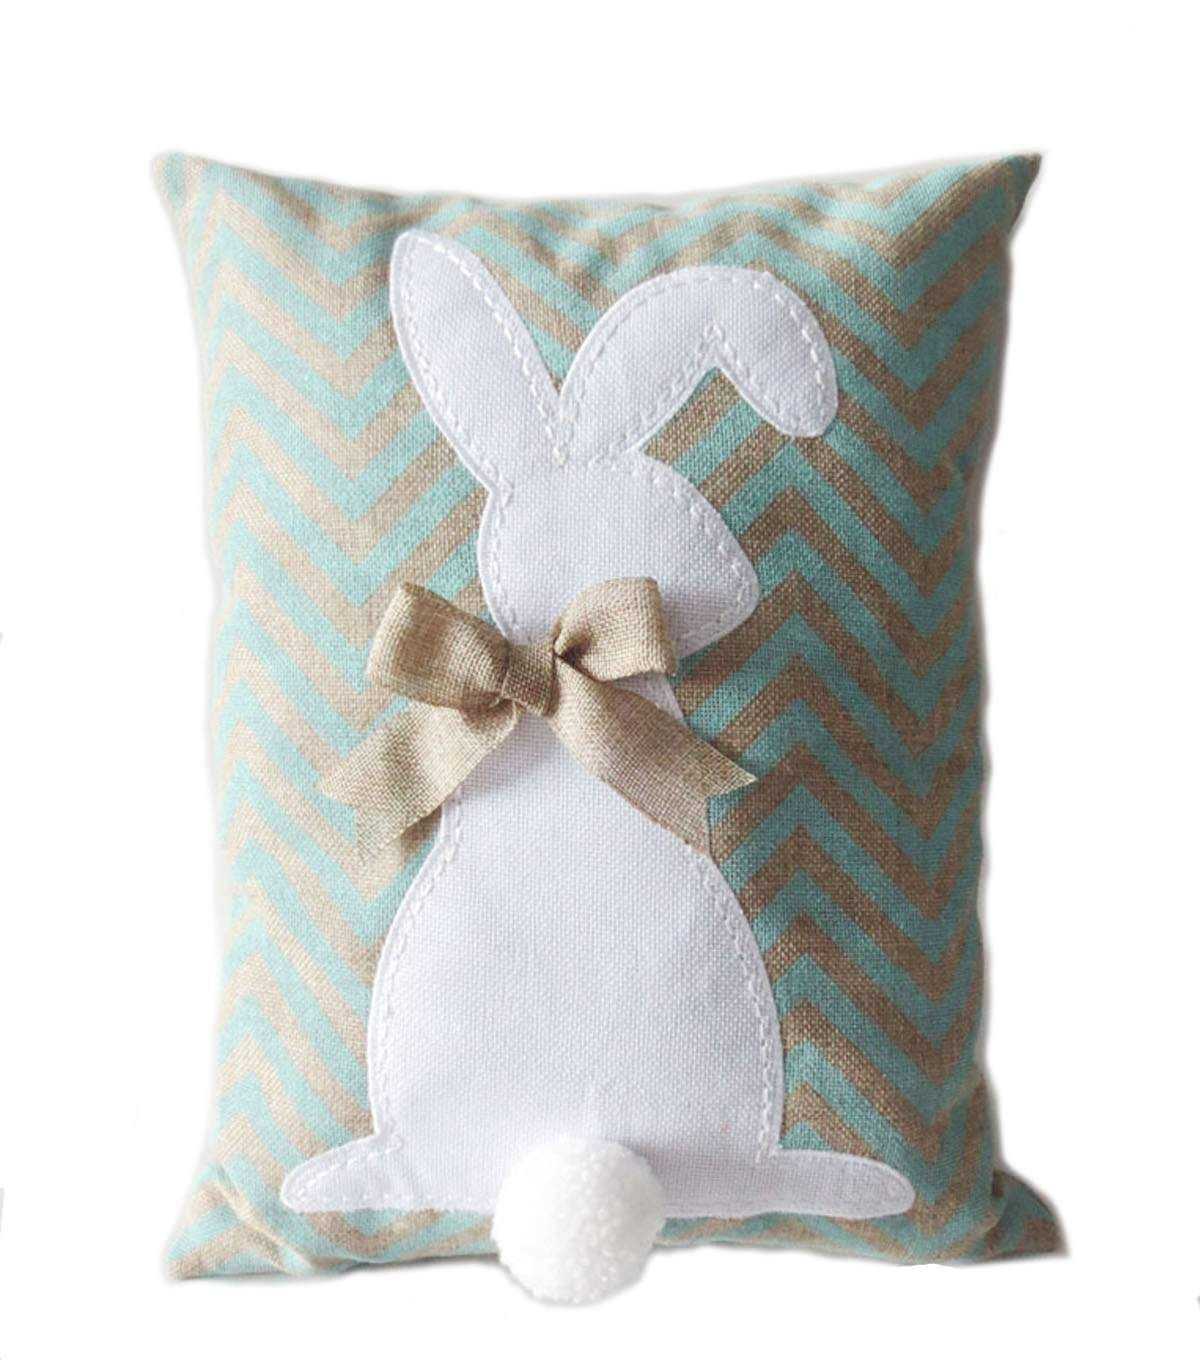 Burlap Easter Bunny Pillow-Blue Baby Pinterest Pillow covers, Bunnies and Christmas